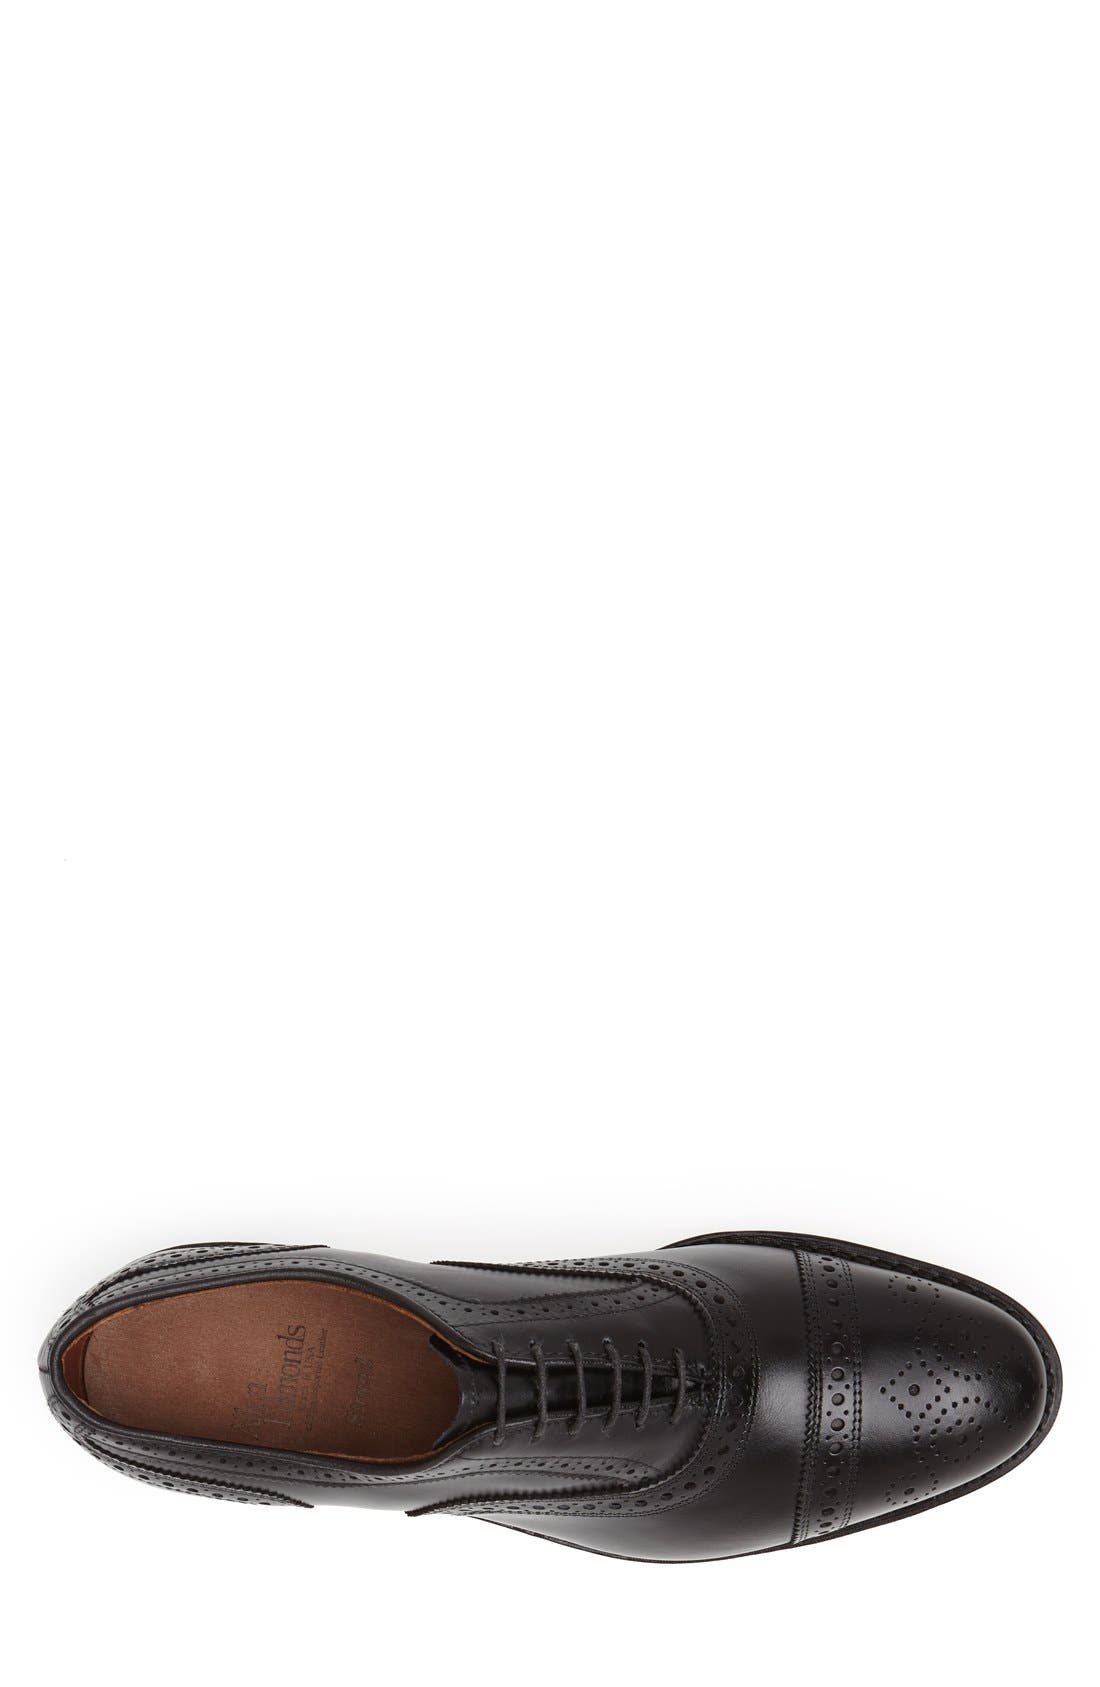 Alternate Image 3  - Allen Edmonds 'Strand' Cap Toe Oxford (Men)